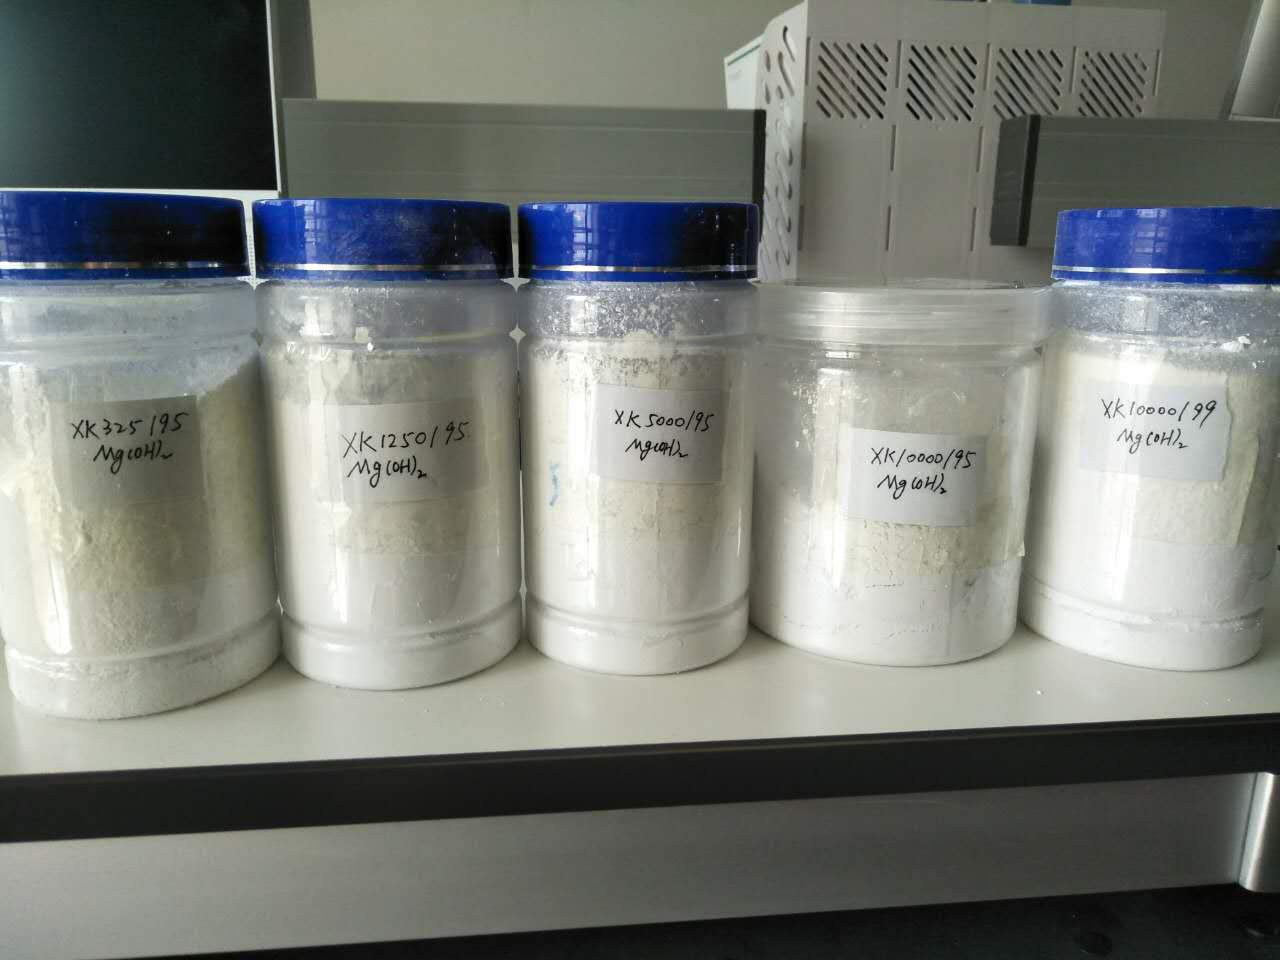 Magnesium hydroxide as PH neutralize agent for checmical waste watertreatment